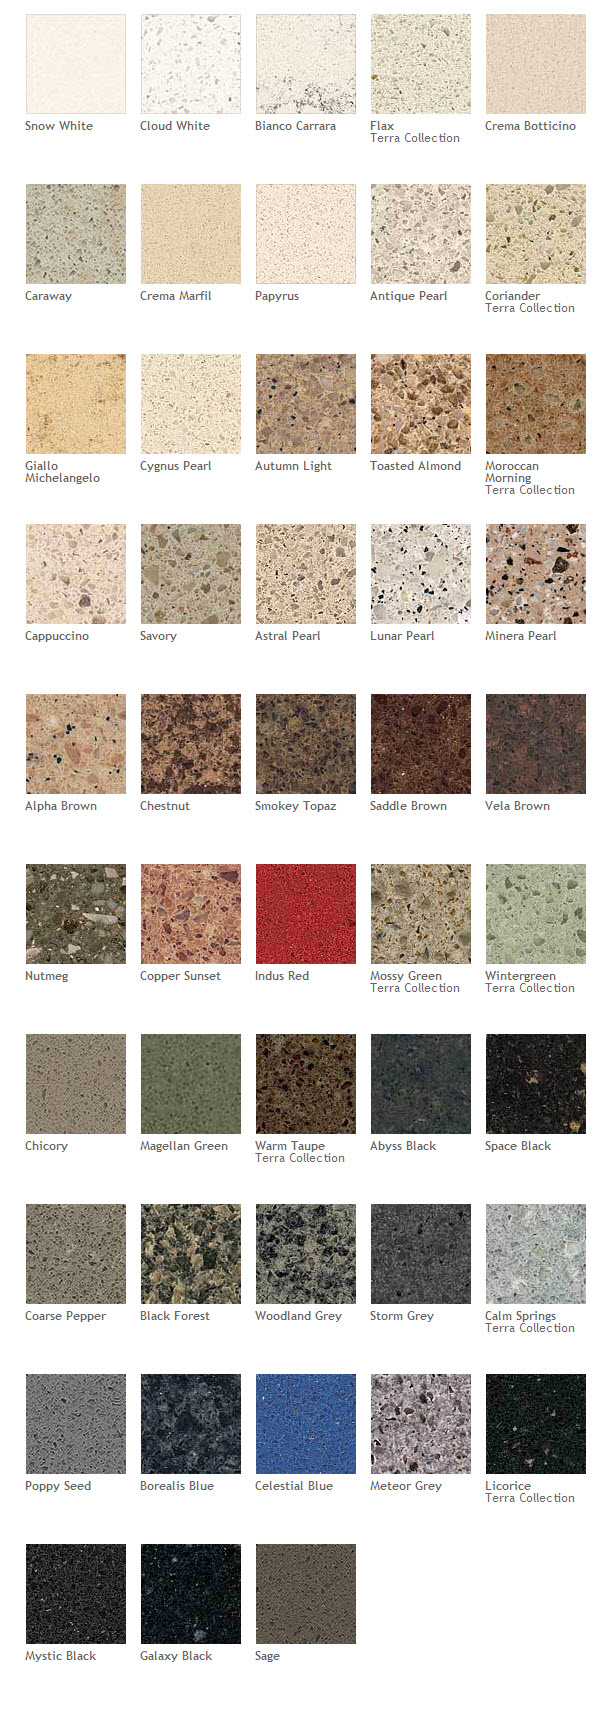 Zodiaq Countertop Reviews : Zodiaq Countertop Reviews http://www.aphroditegranite.com/product ...